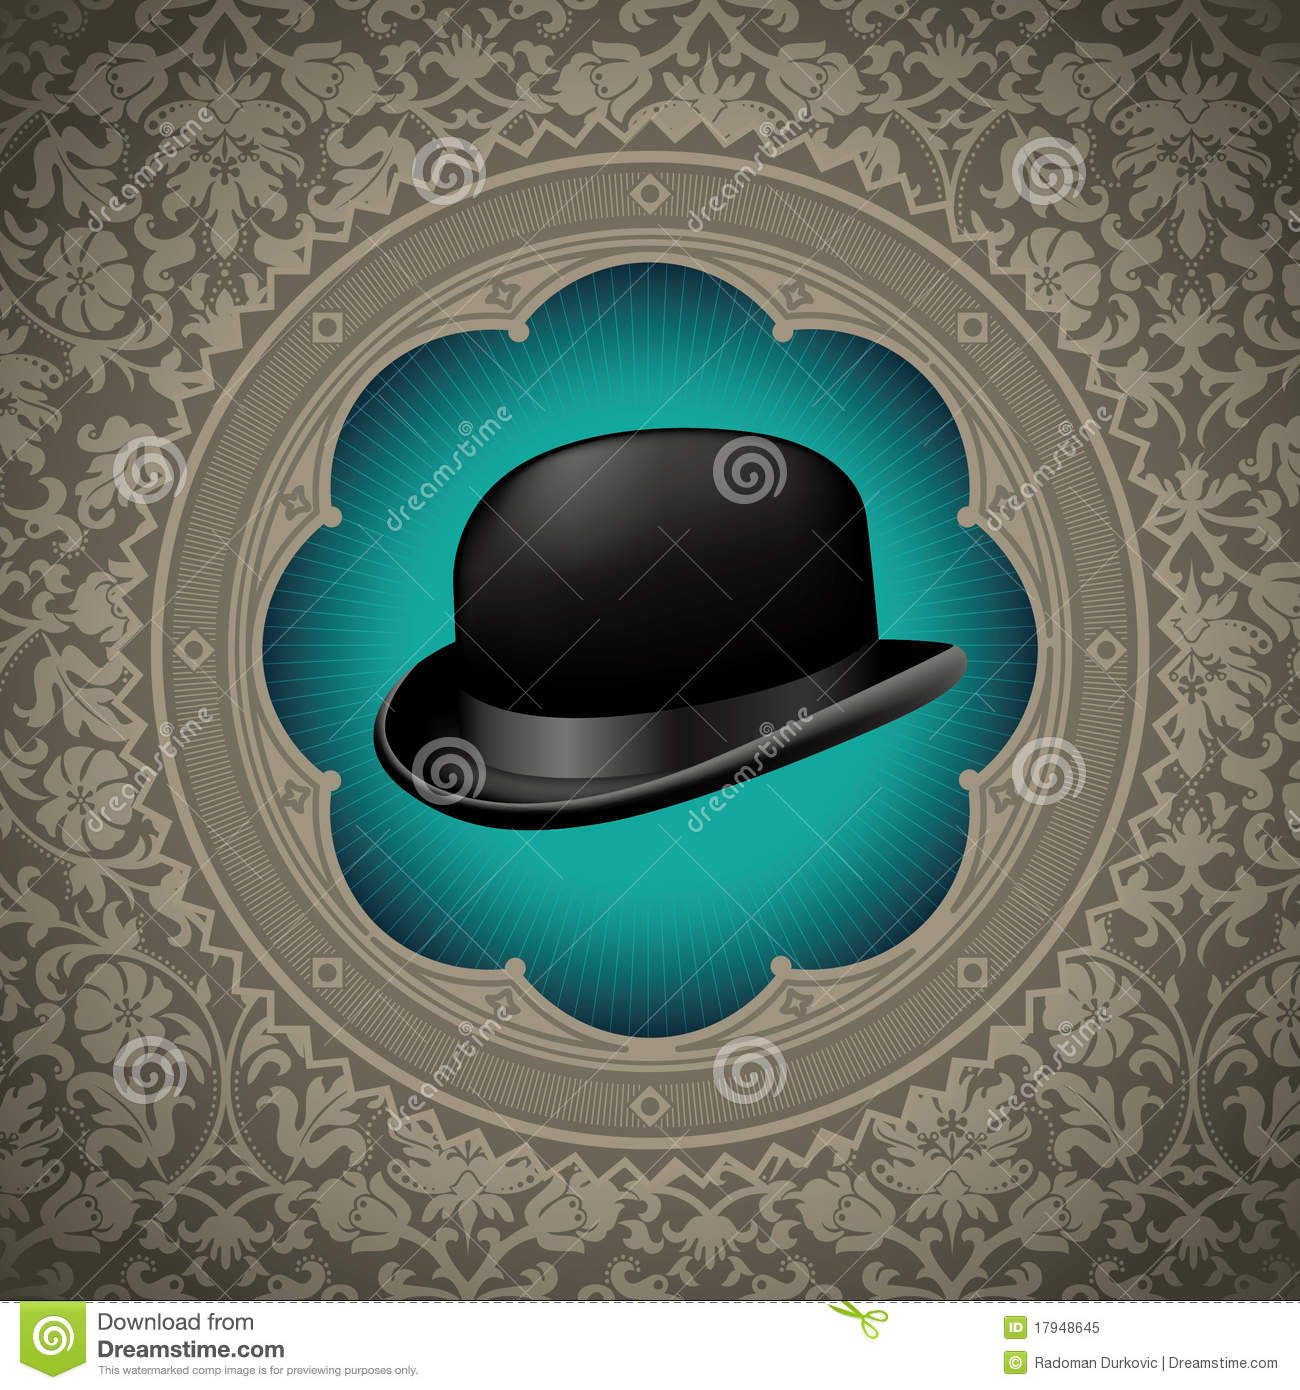 Bowler Hat Background. Royalty Free Stock Photo - Image: 17948645